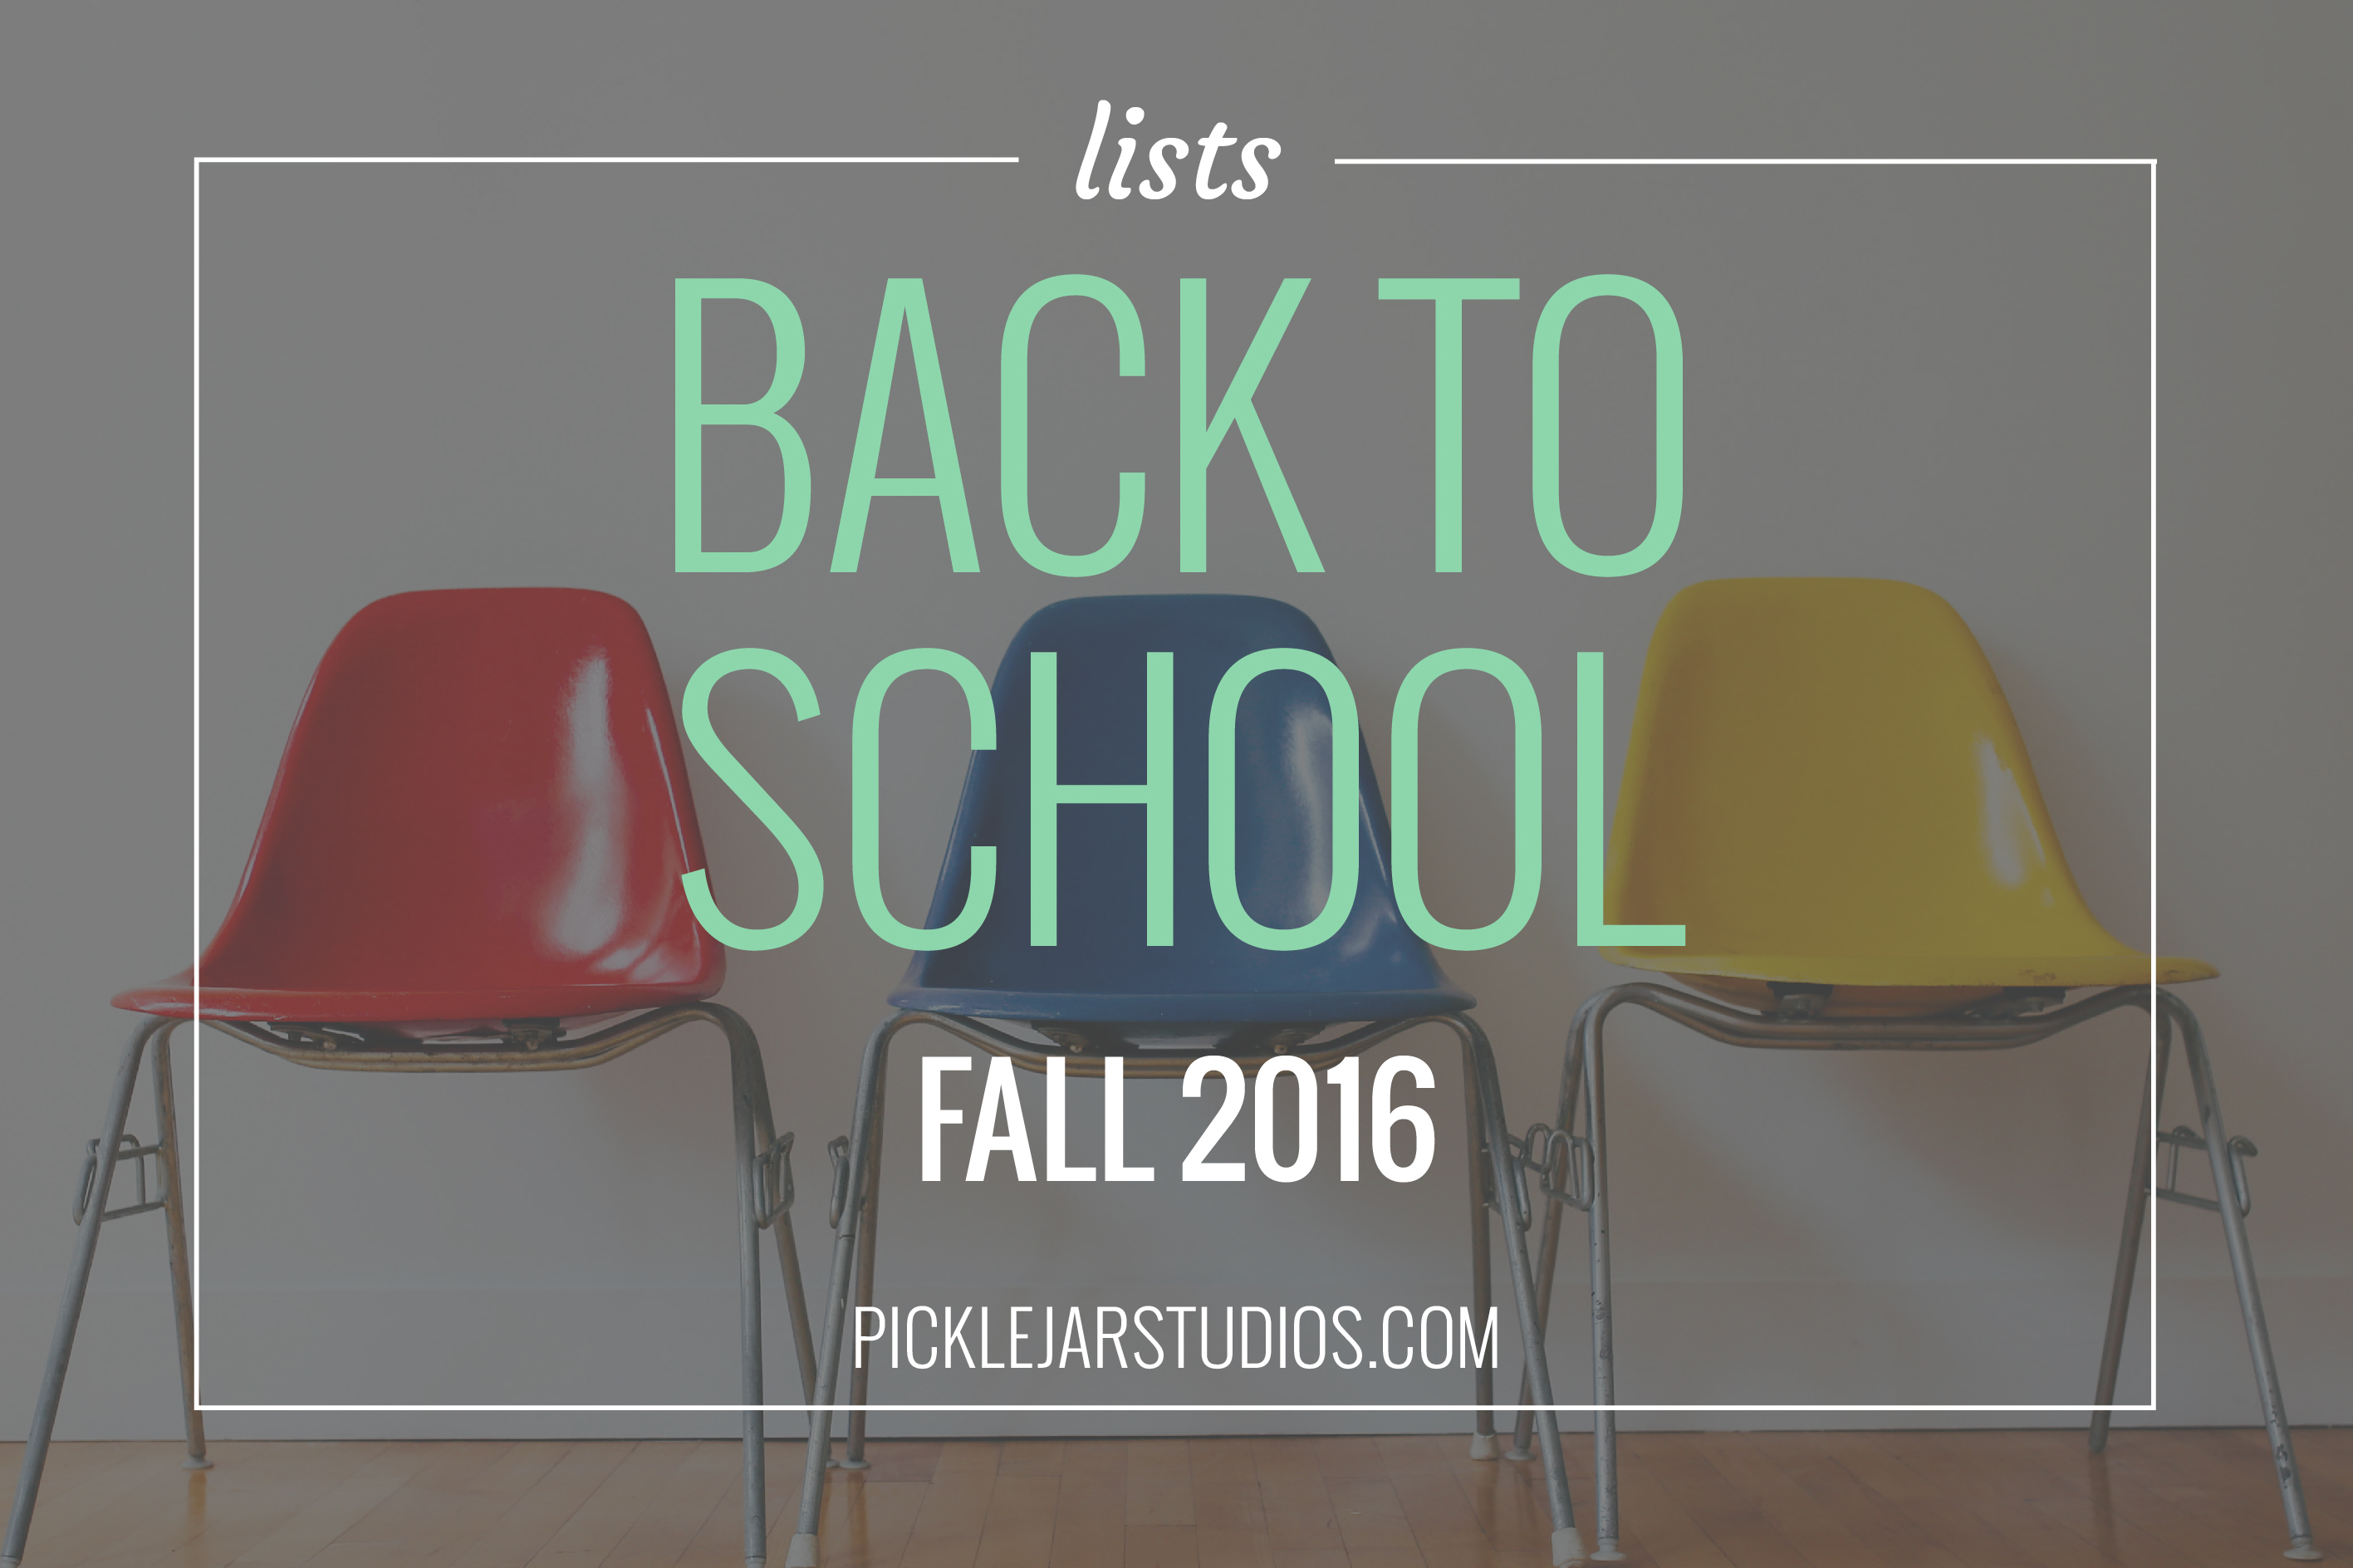 It's back to school time! This year I've got boots, books and poufs on my list. What's on yours?